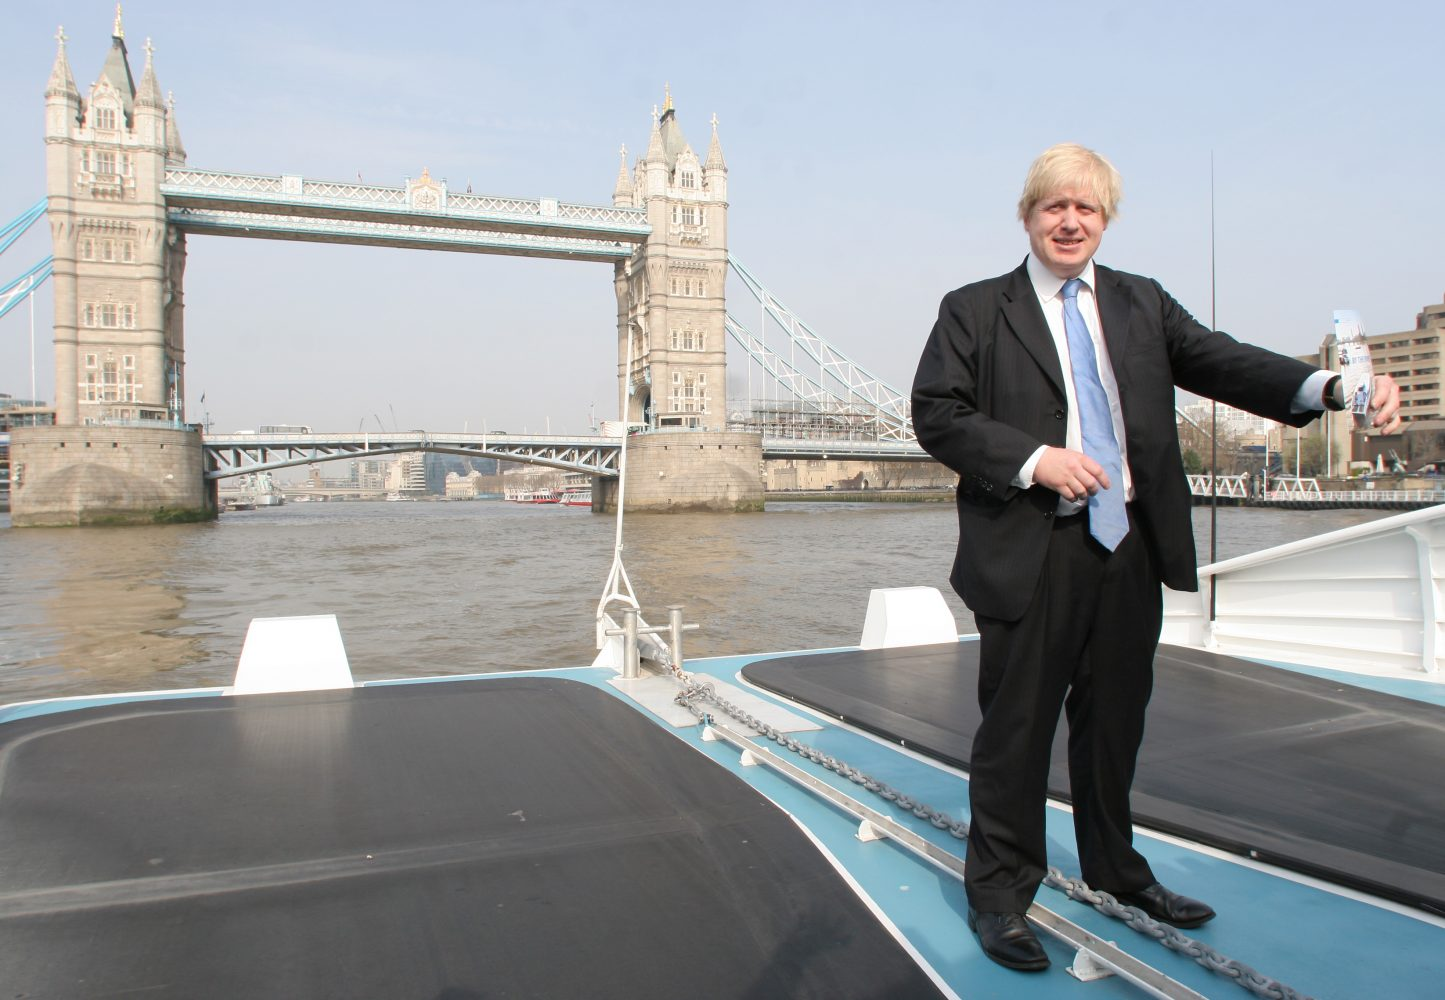 James O Jenkins Boris Johnson Boris Johnson, Mayor of London